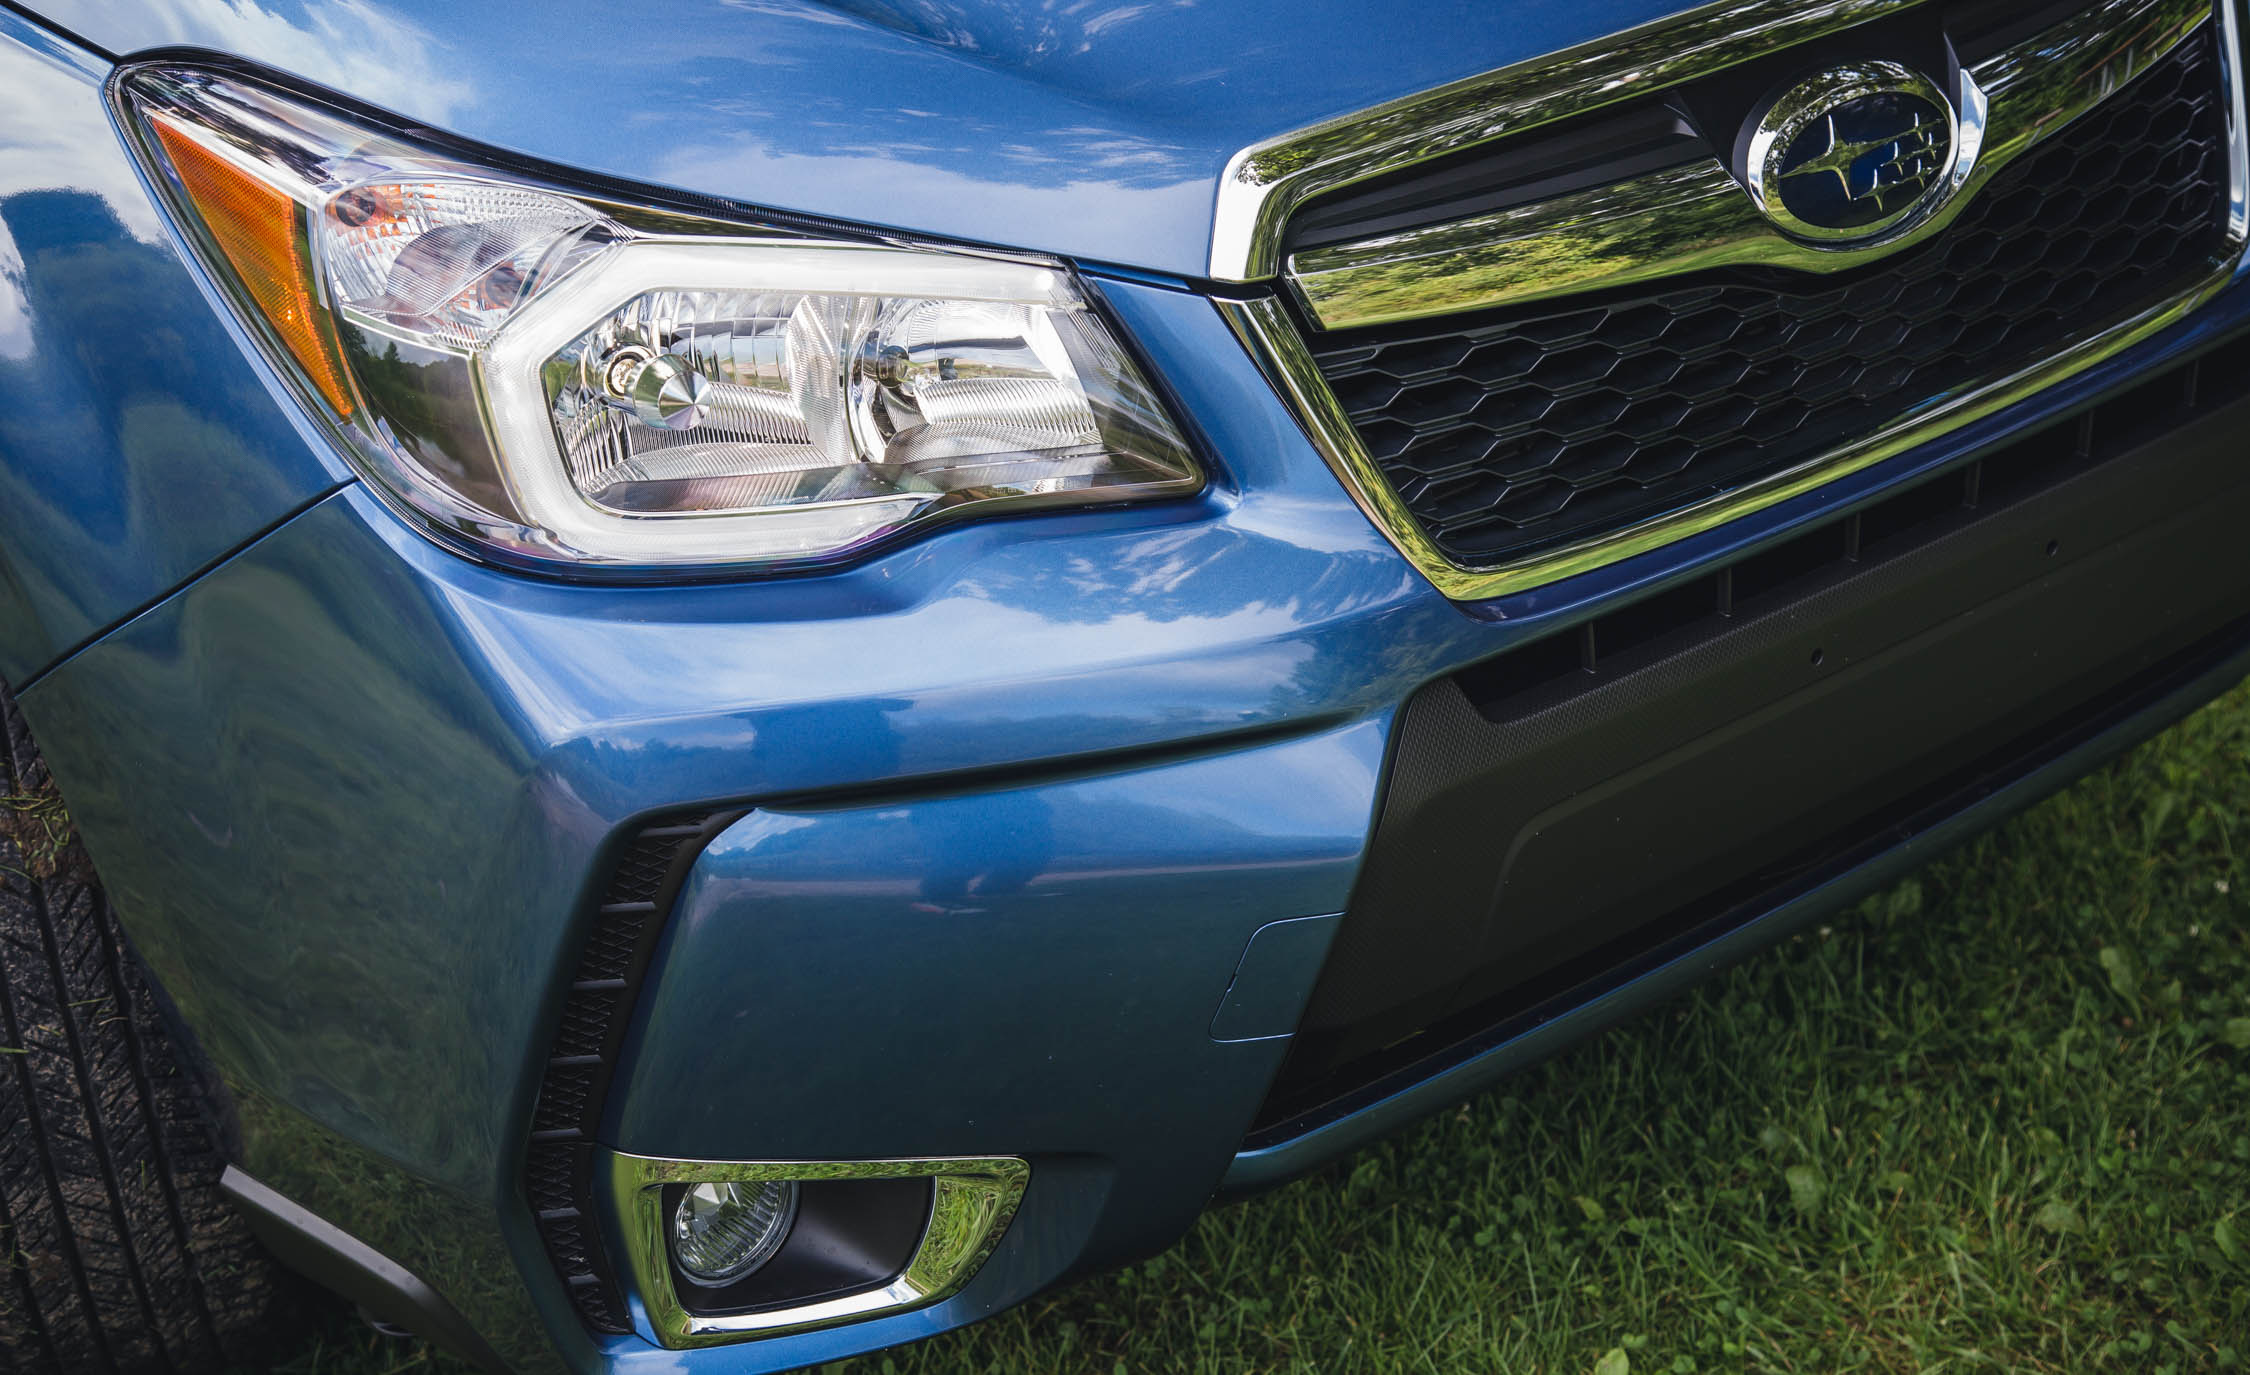 2016 Subaru Forester 2 0xt Touring Exterior Headlight Left (Photo 8 of 29)